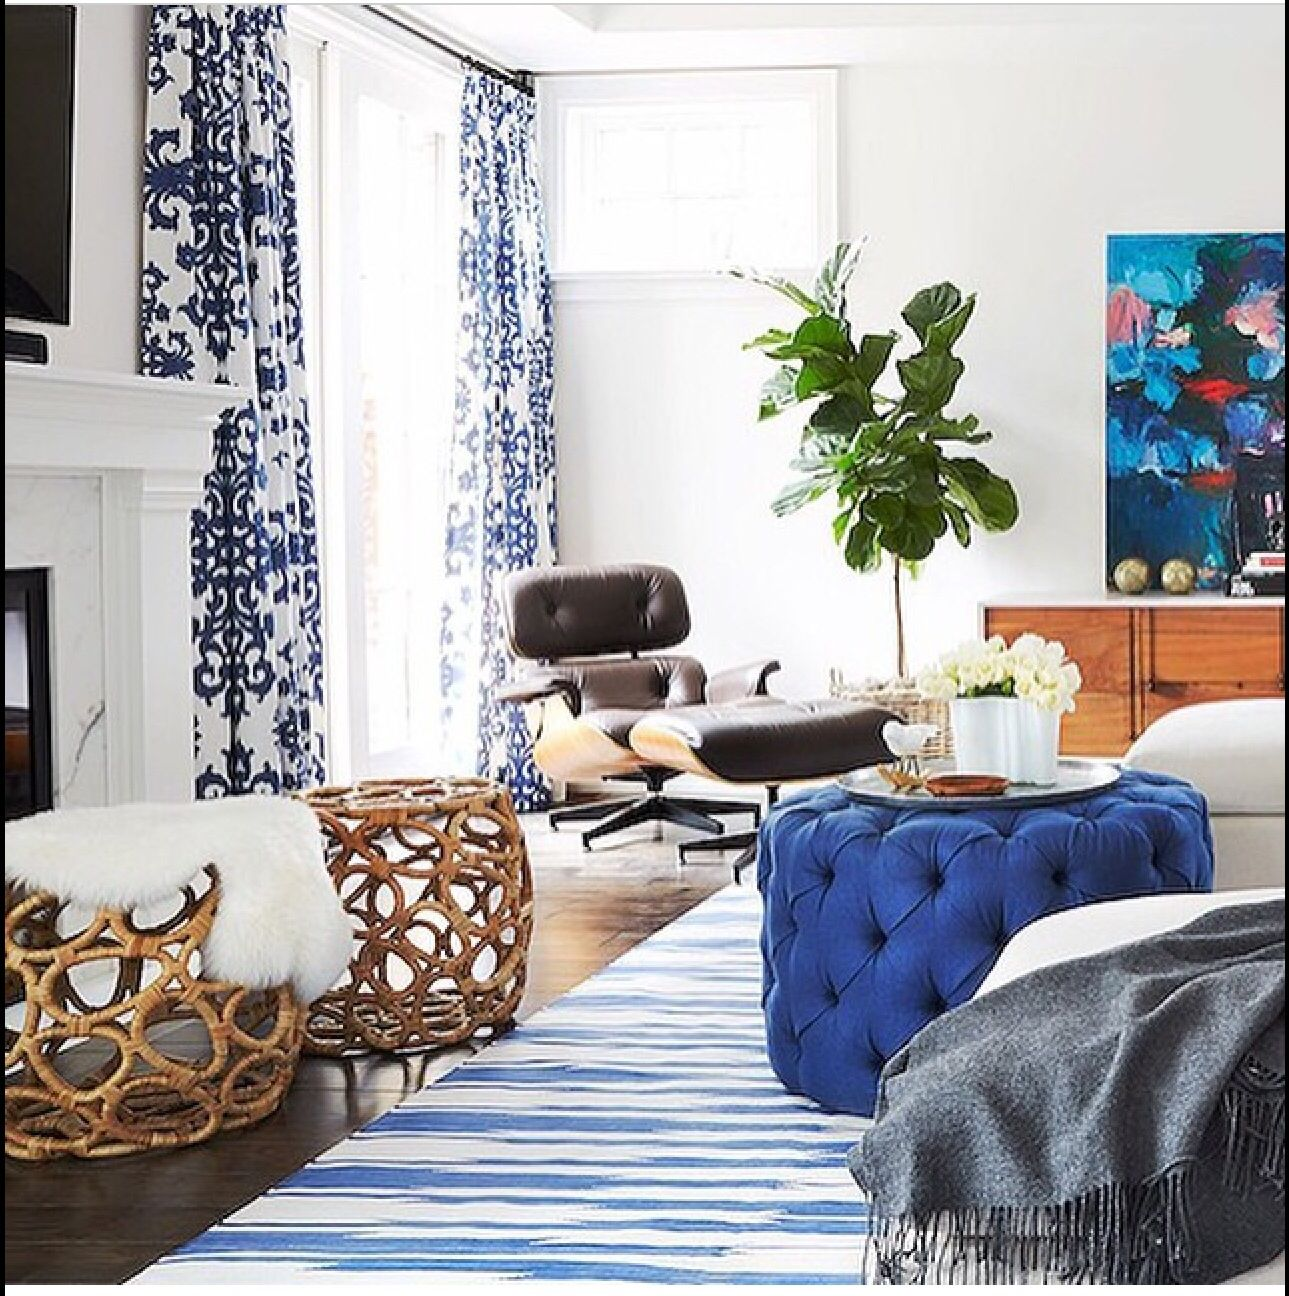 Cool Blue | Home decor | Pinterest | Living rooms, Room and White ...